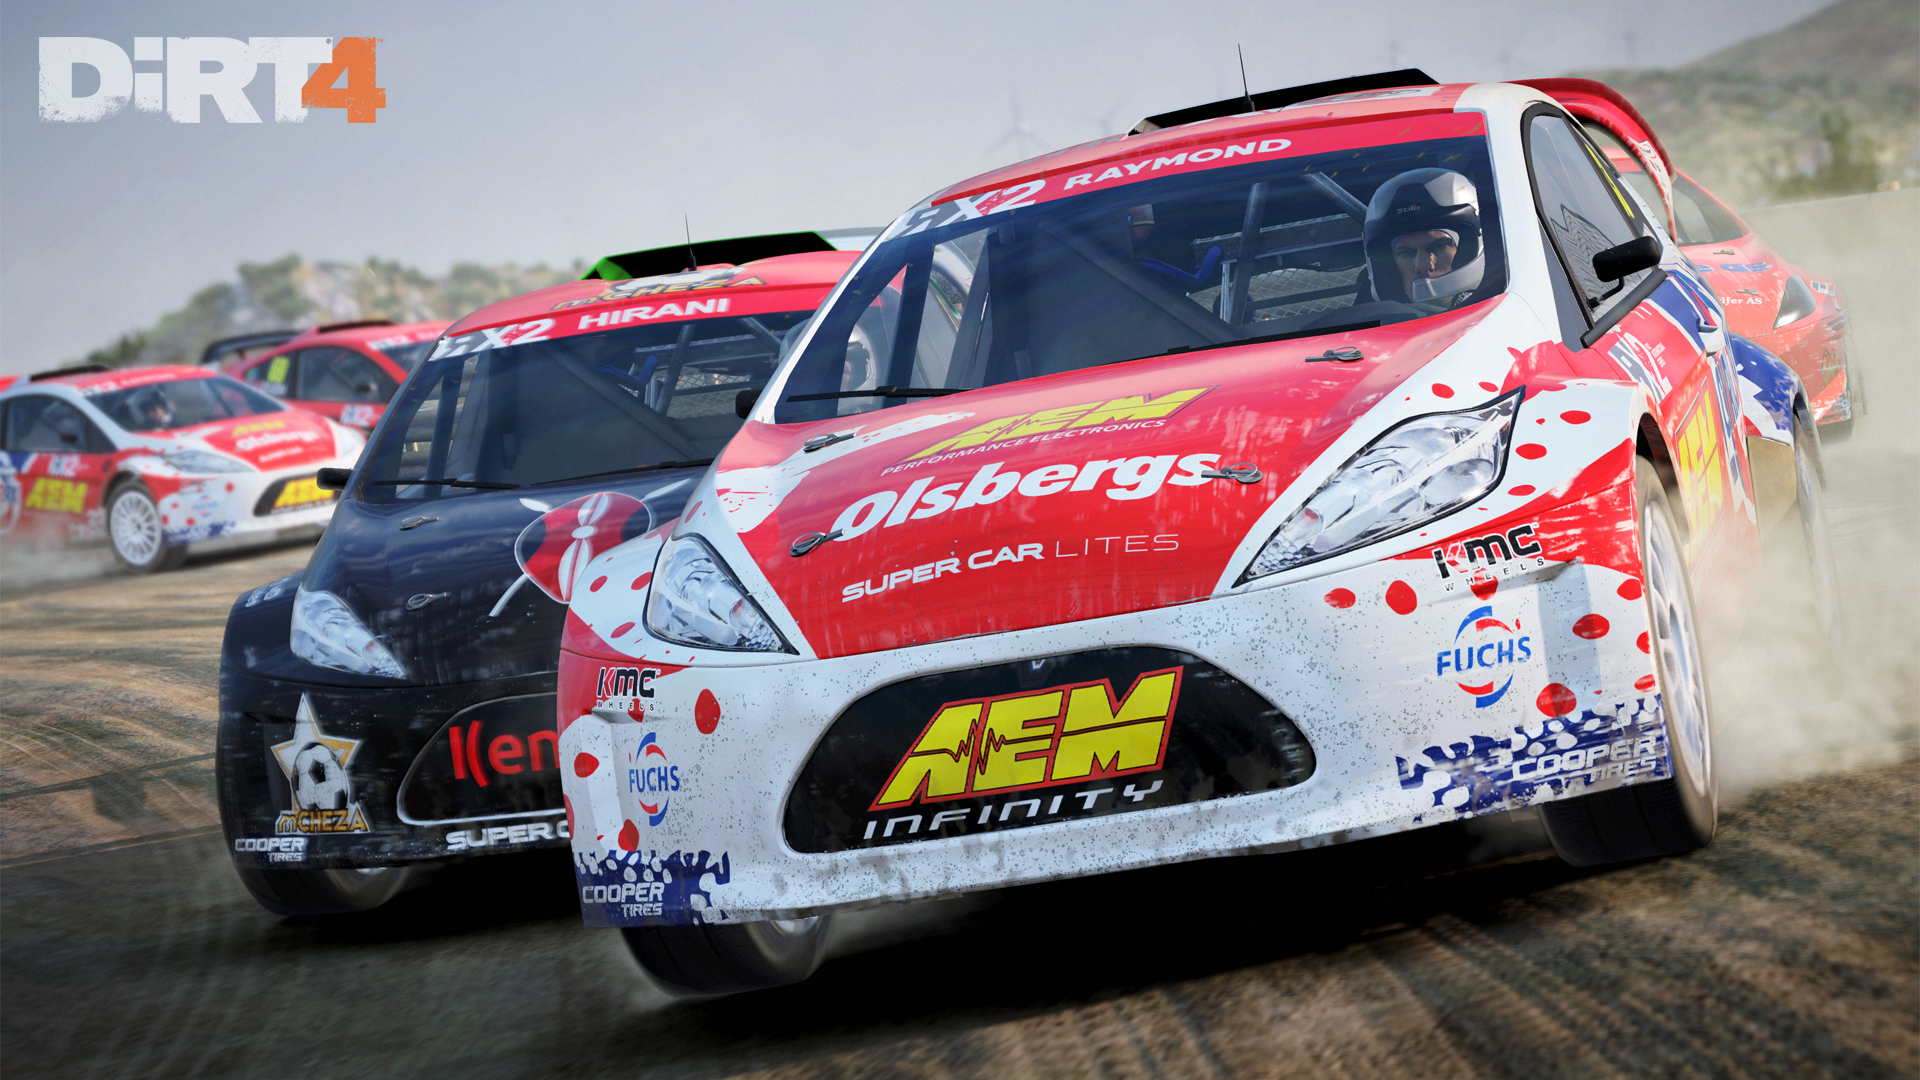 Dirt 4 Review As Engaging As Dirt Rally But Without The Punishing